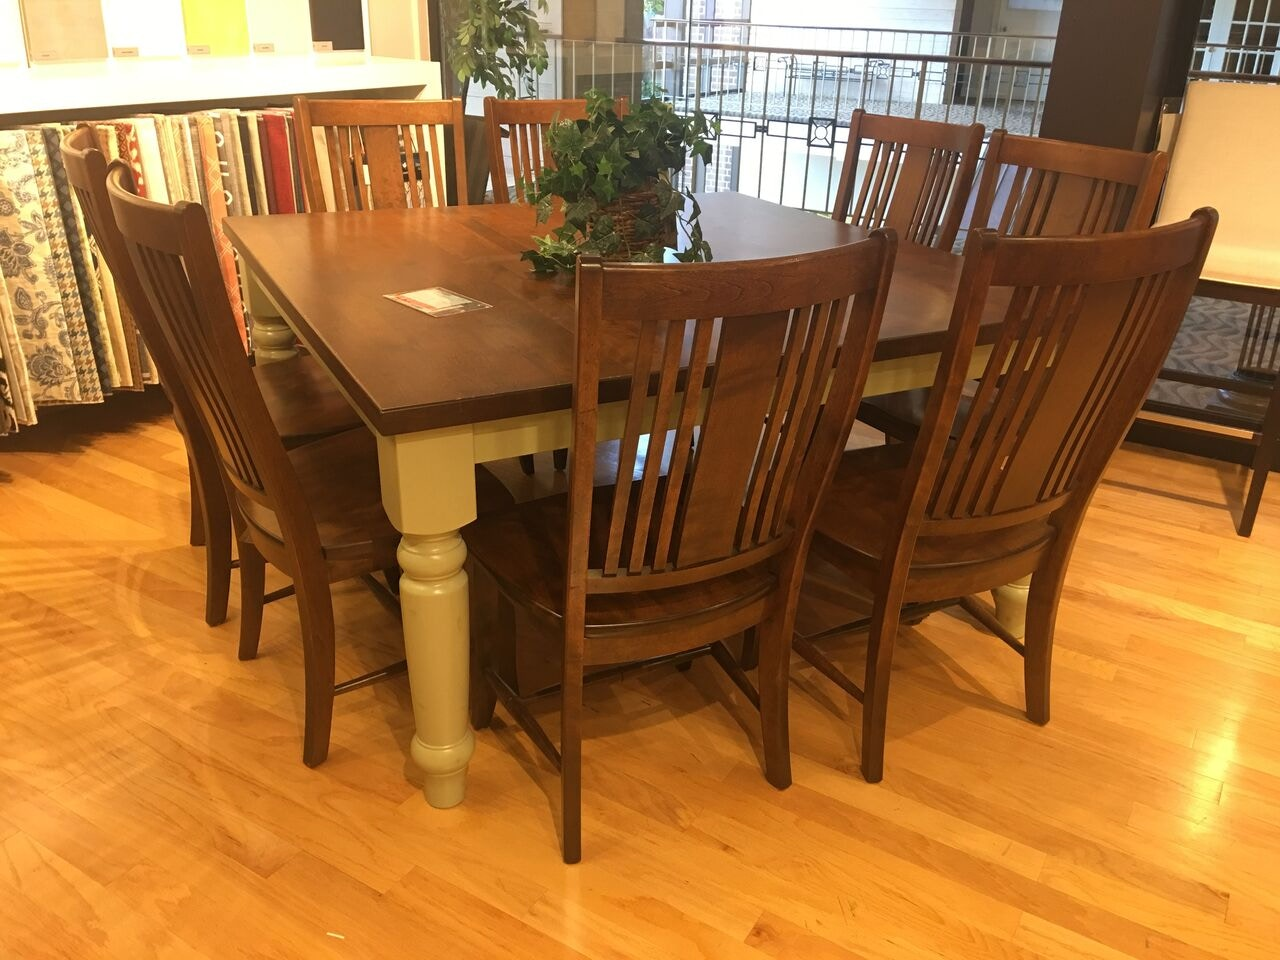 Hickory Park Furniture Outlet 60x60 Dining Table Group By Canadel Furniture  TSQ 0 60601468AHATF